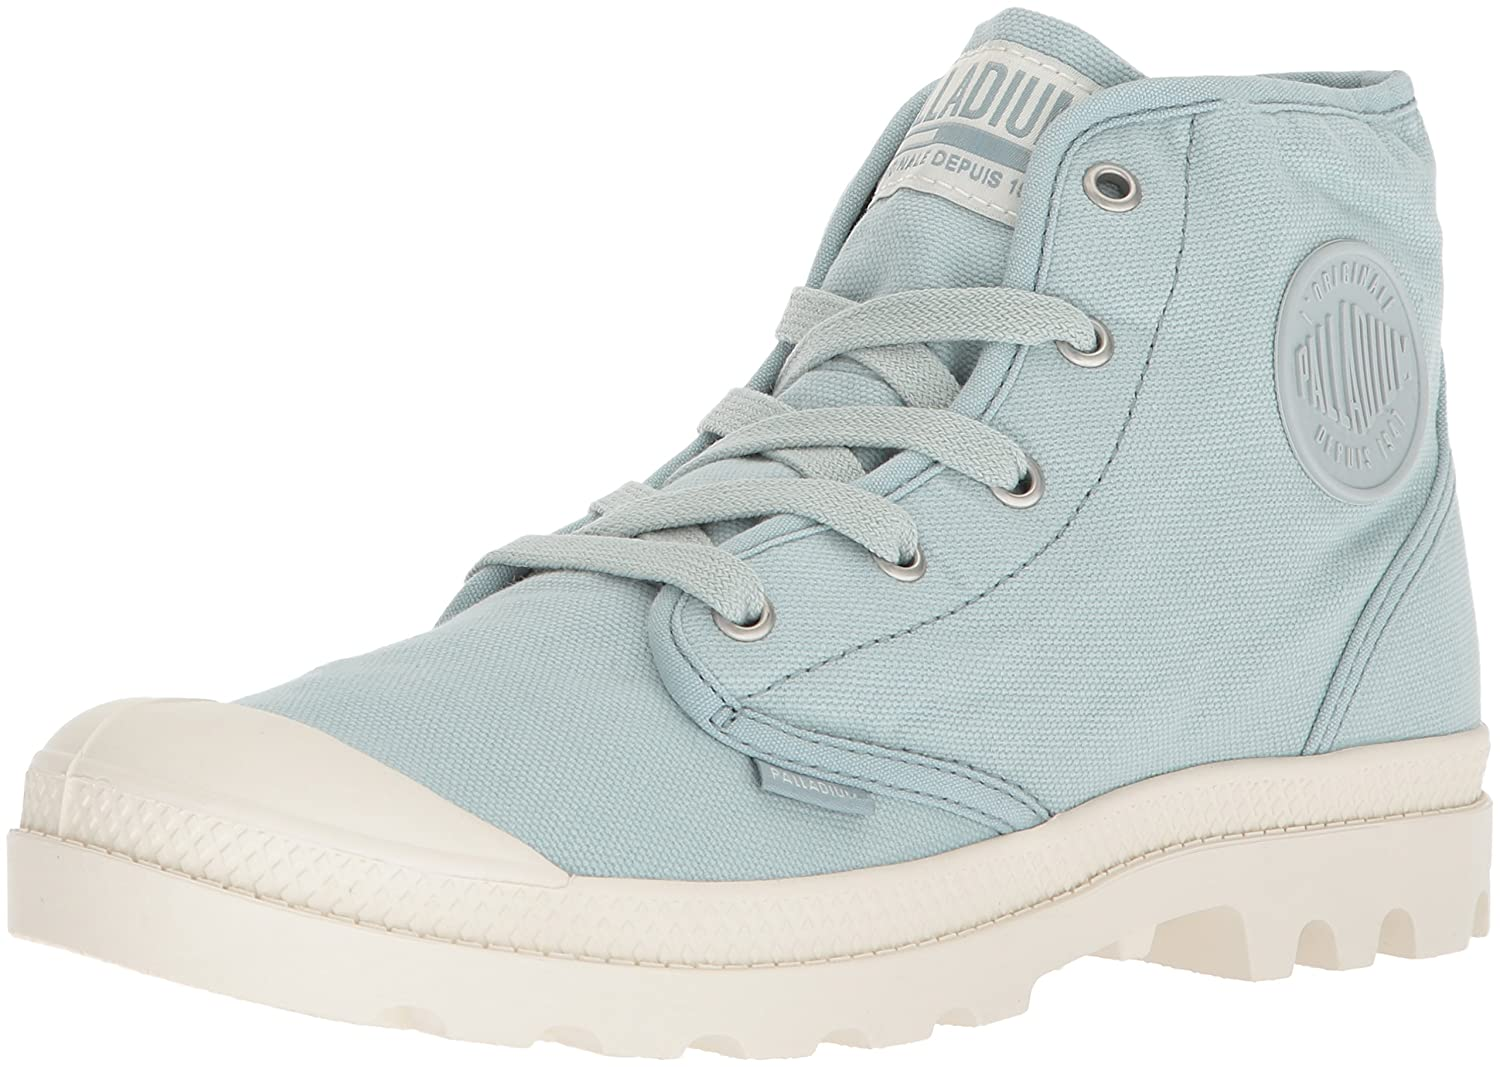 Palladium Women's Pampa Hi Ankle Boot B074B2C983 7 B(M) US|Grey